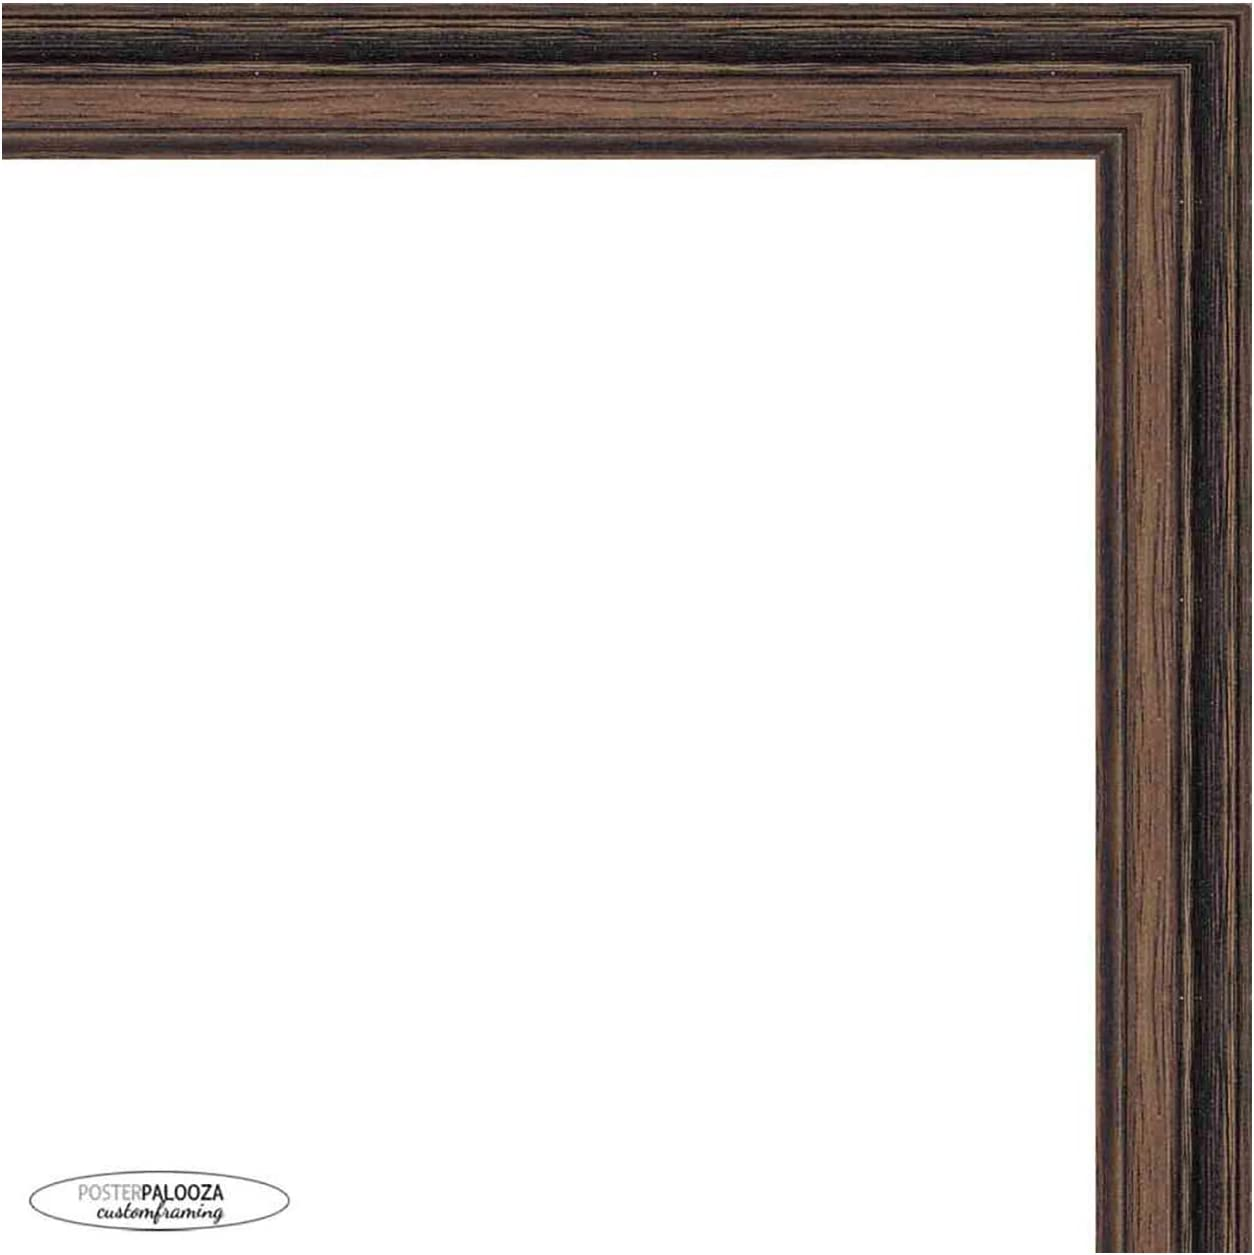 16x40 All stores are sold Rustic Walnut Wood Picture Panoramic - F Acrylic Frame UV Sale special price